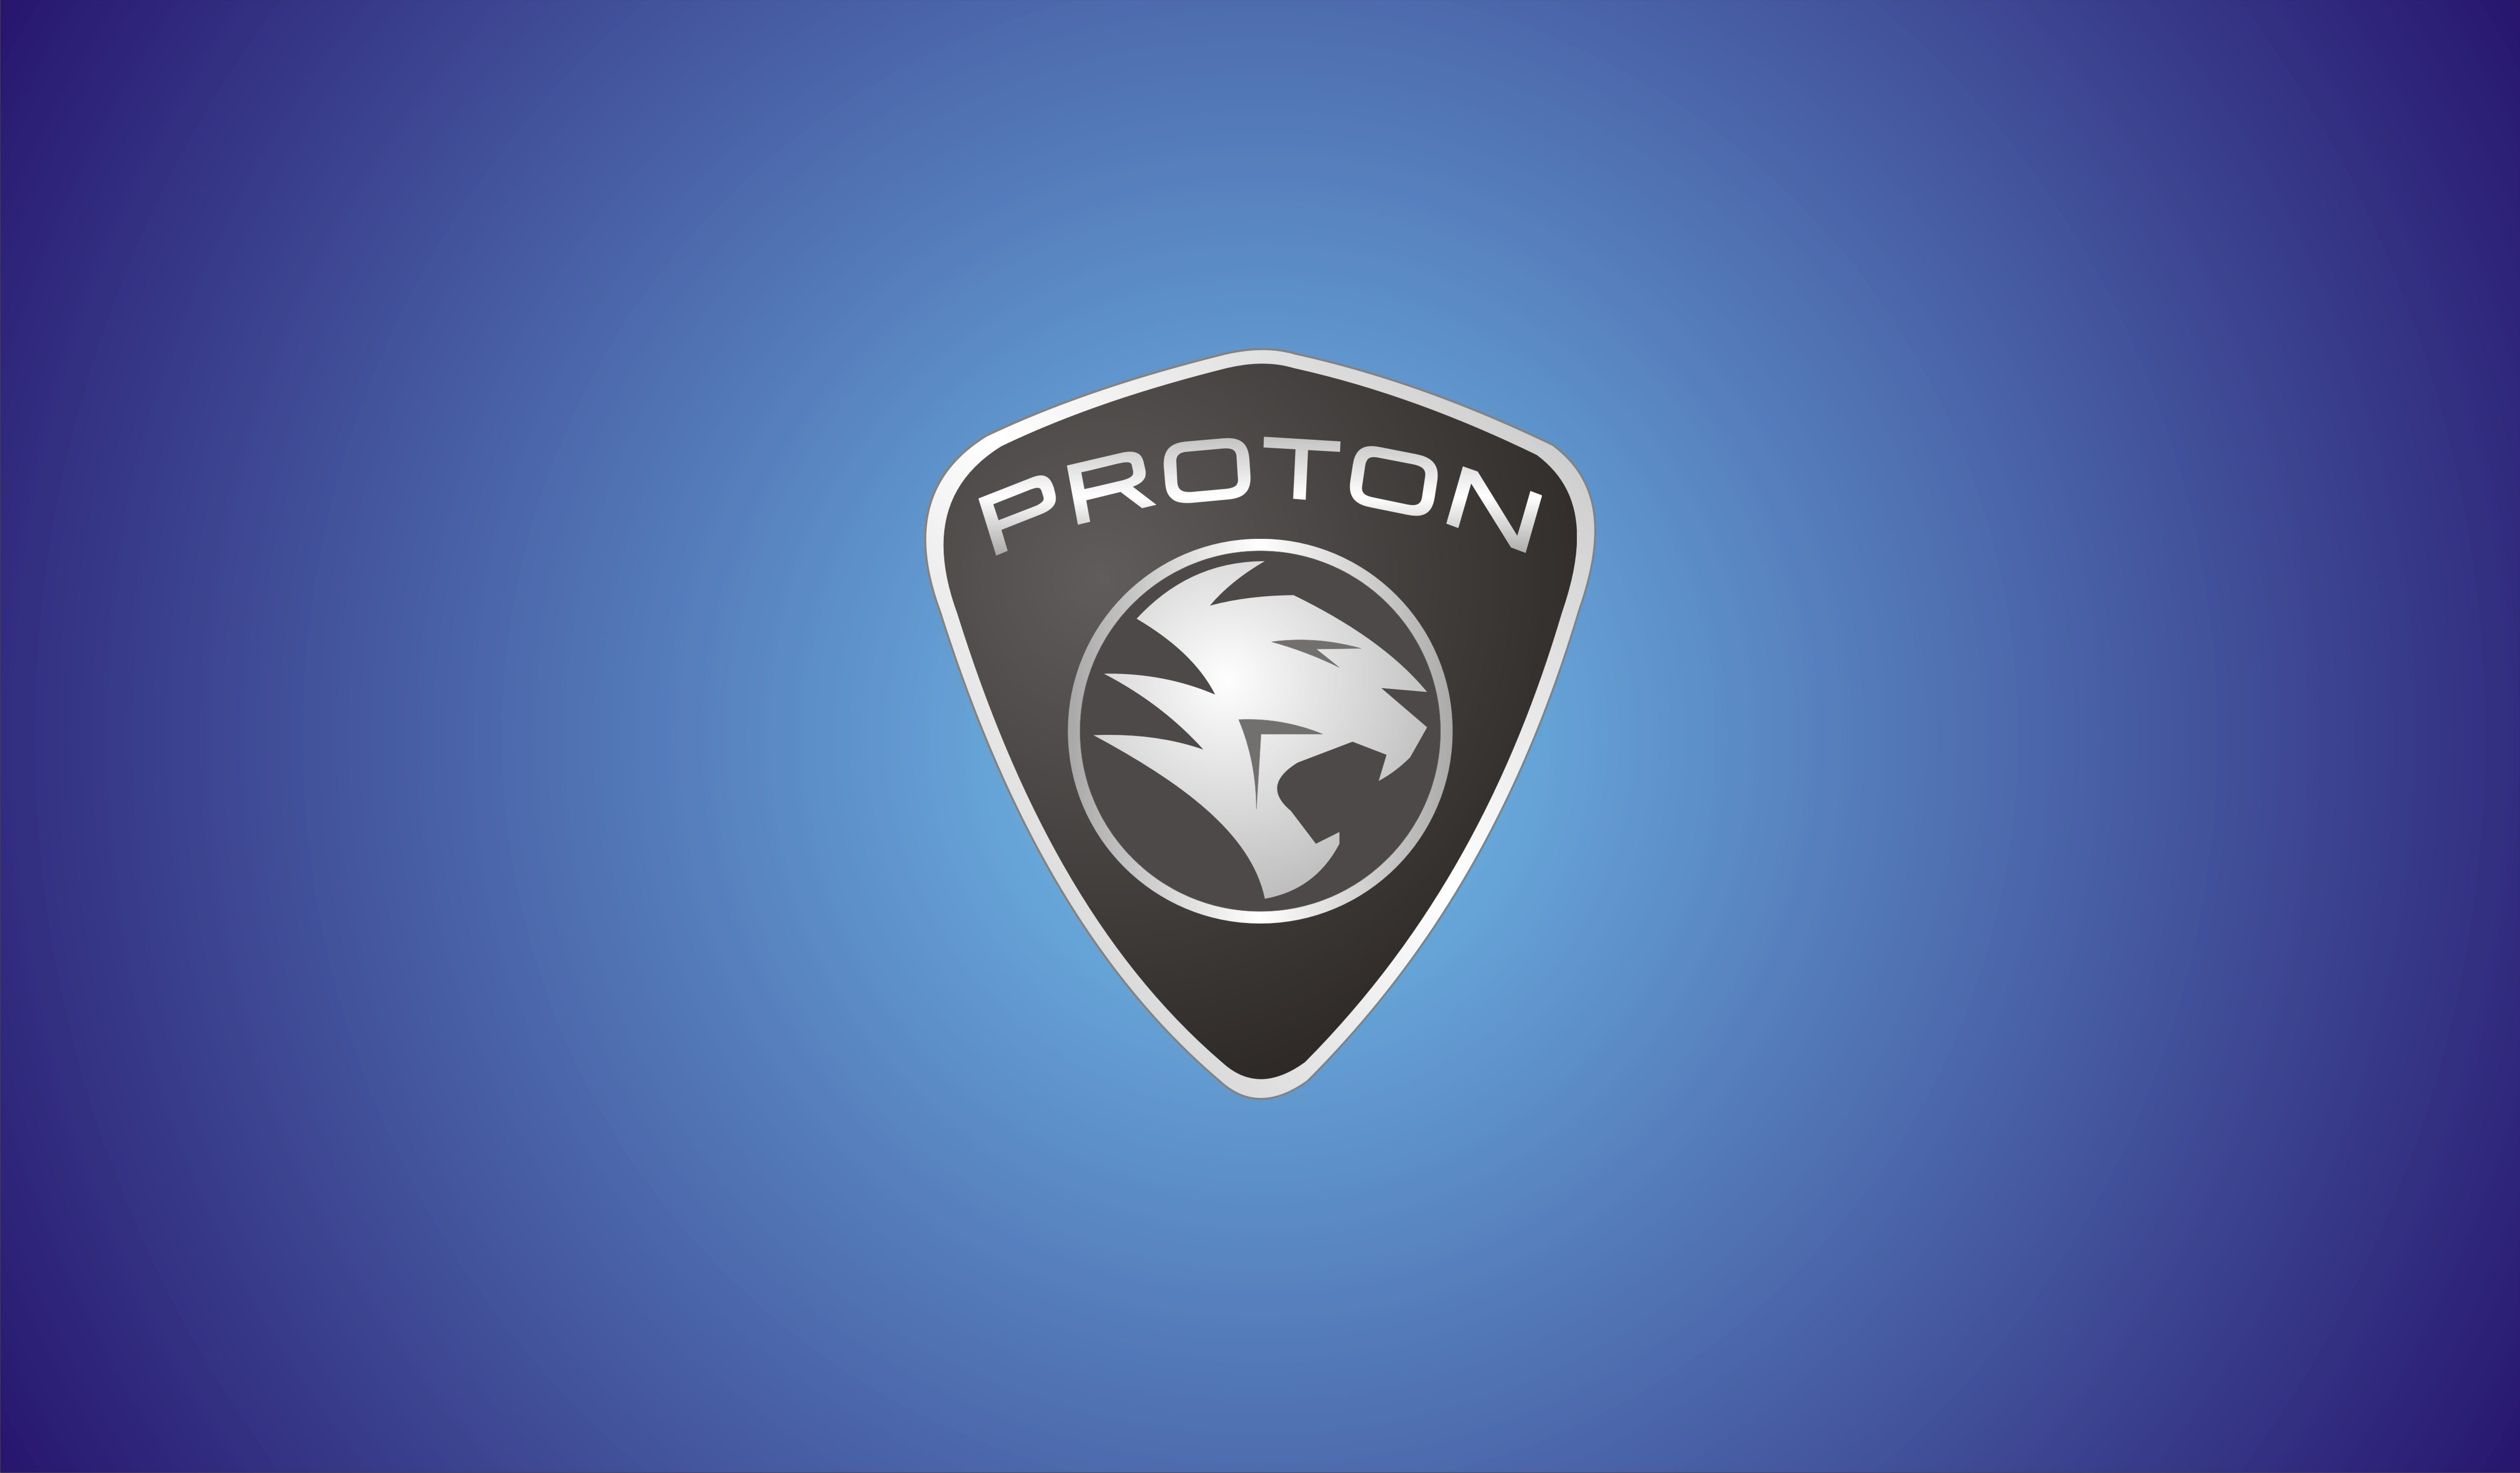 4756x2780 - Proton Wallpapers 1